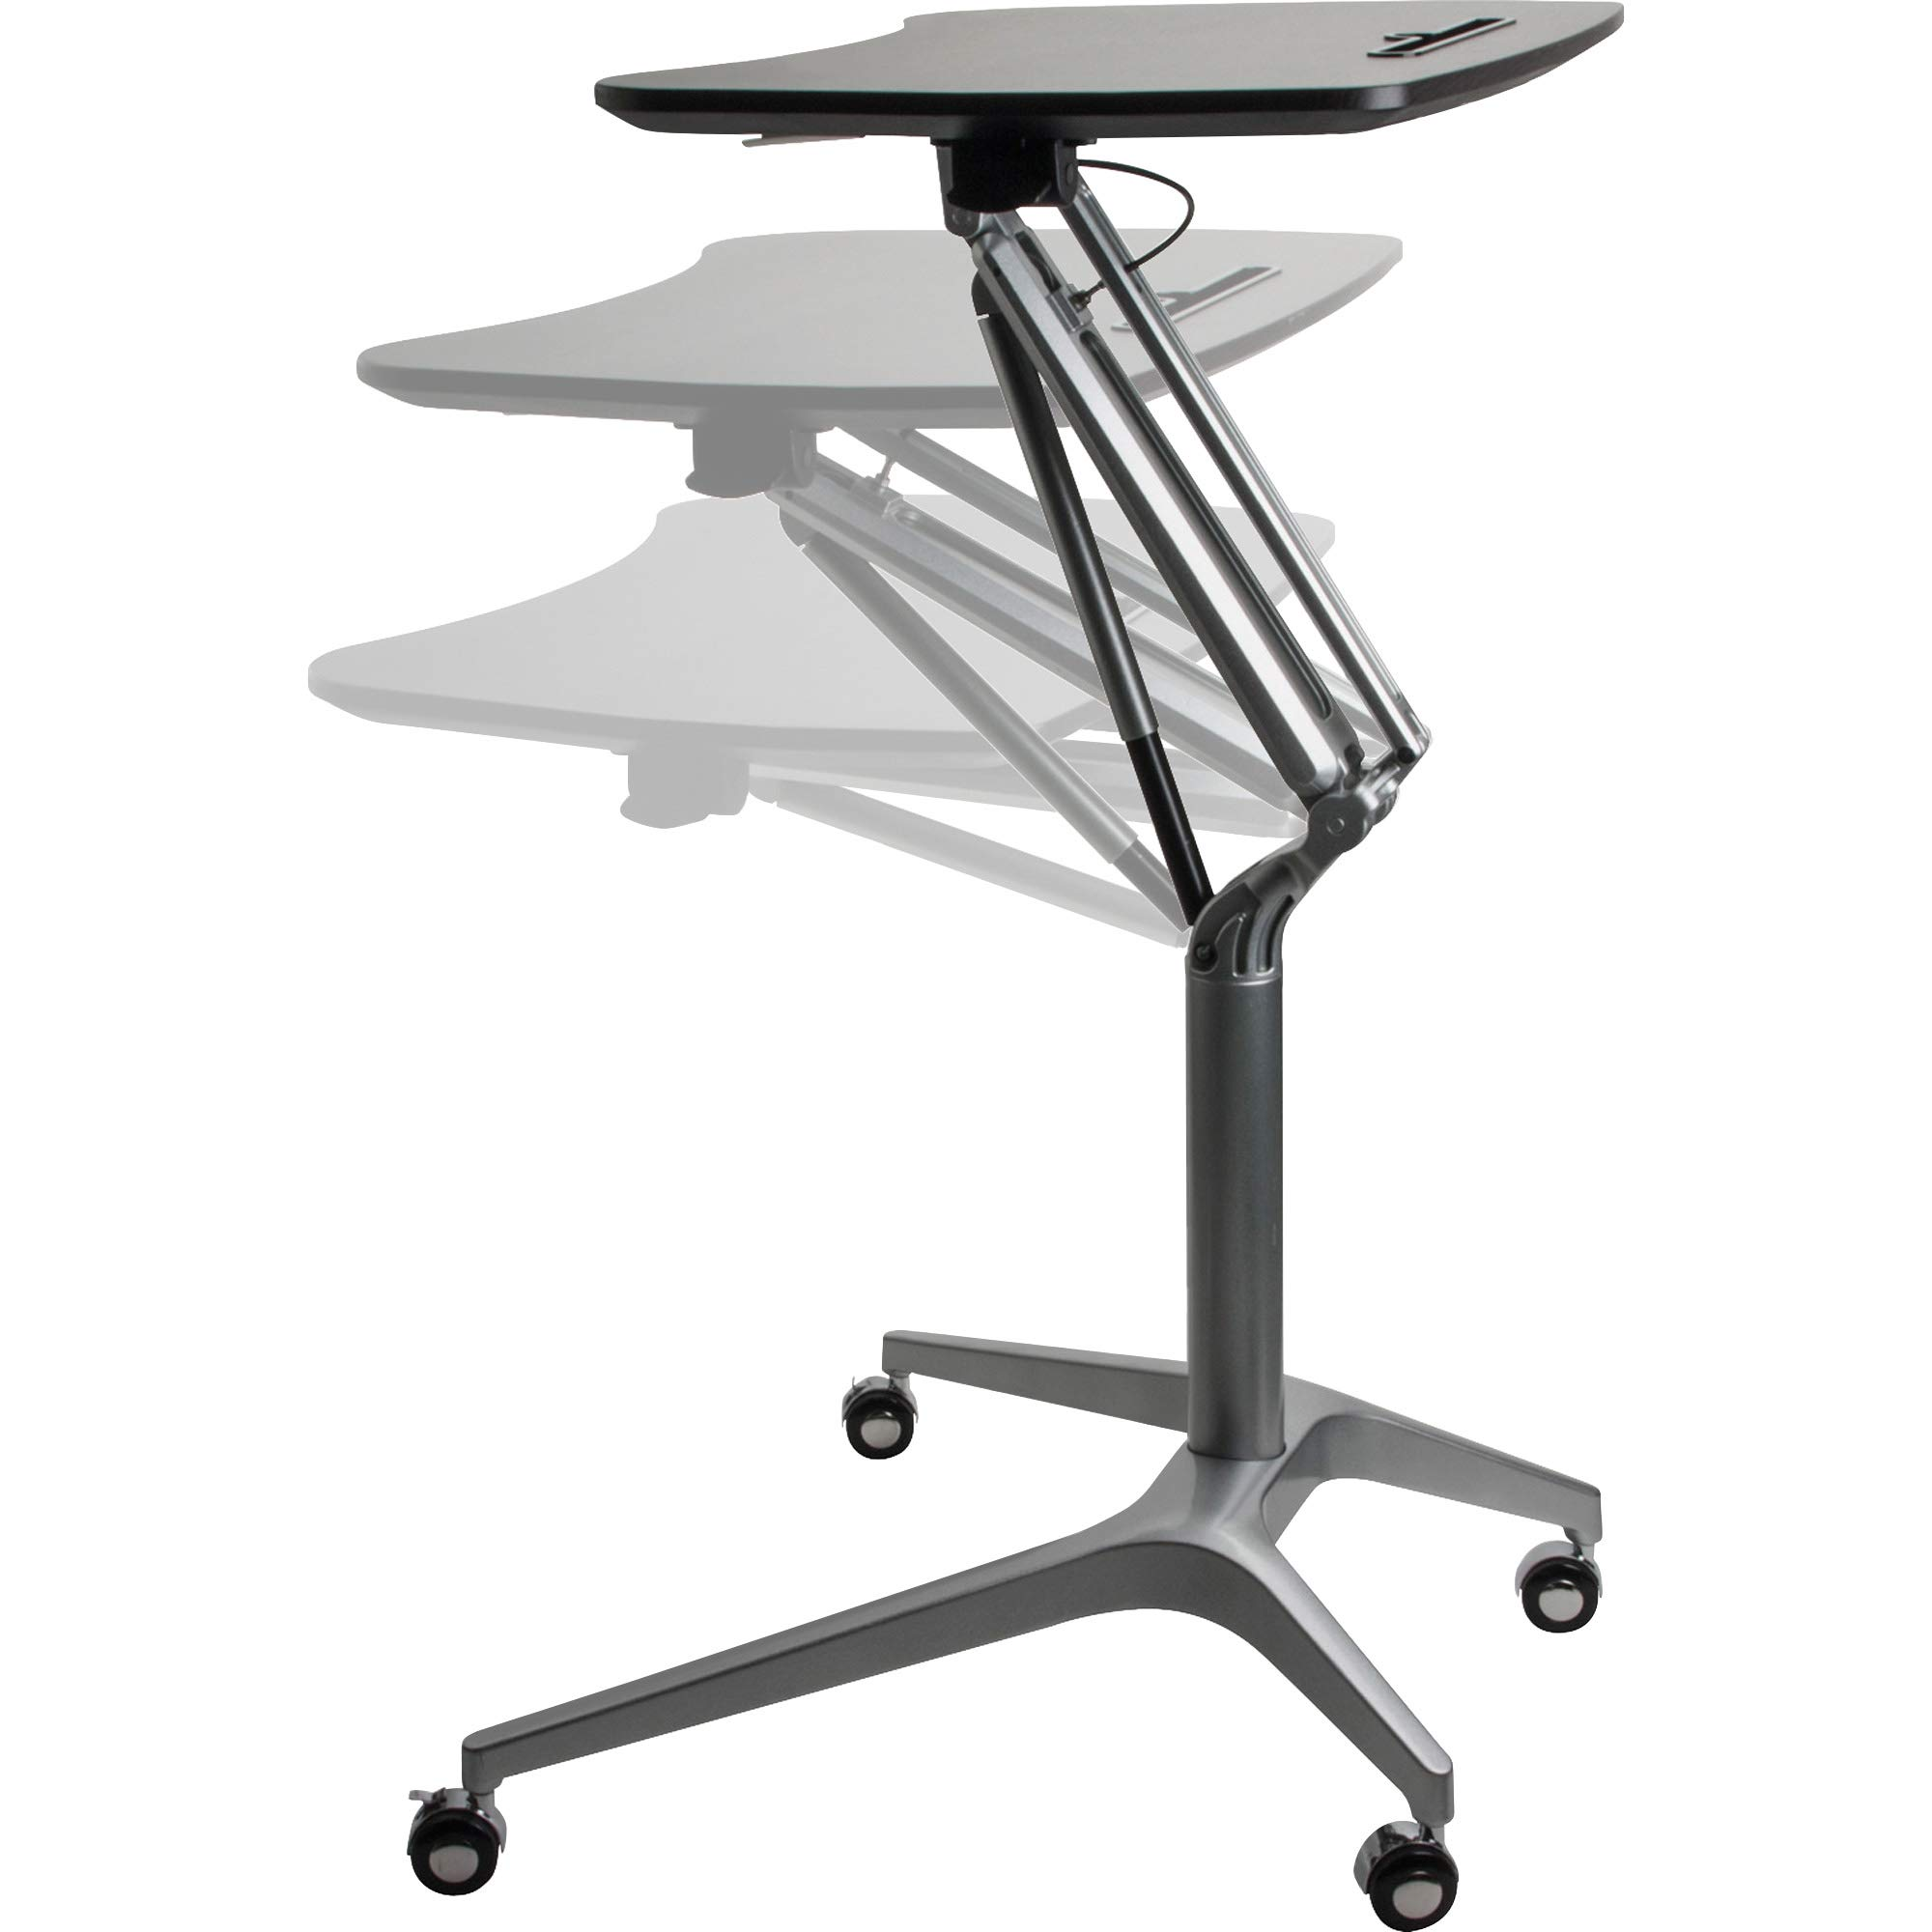 Lorell 84838 Active Office Laptop Table, Powder Coated,Black